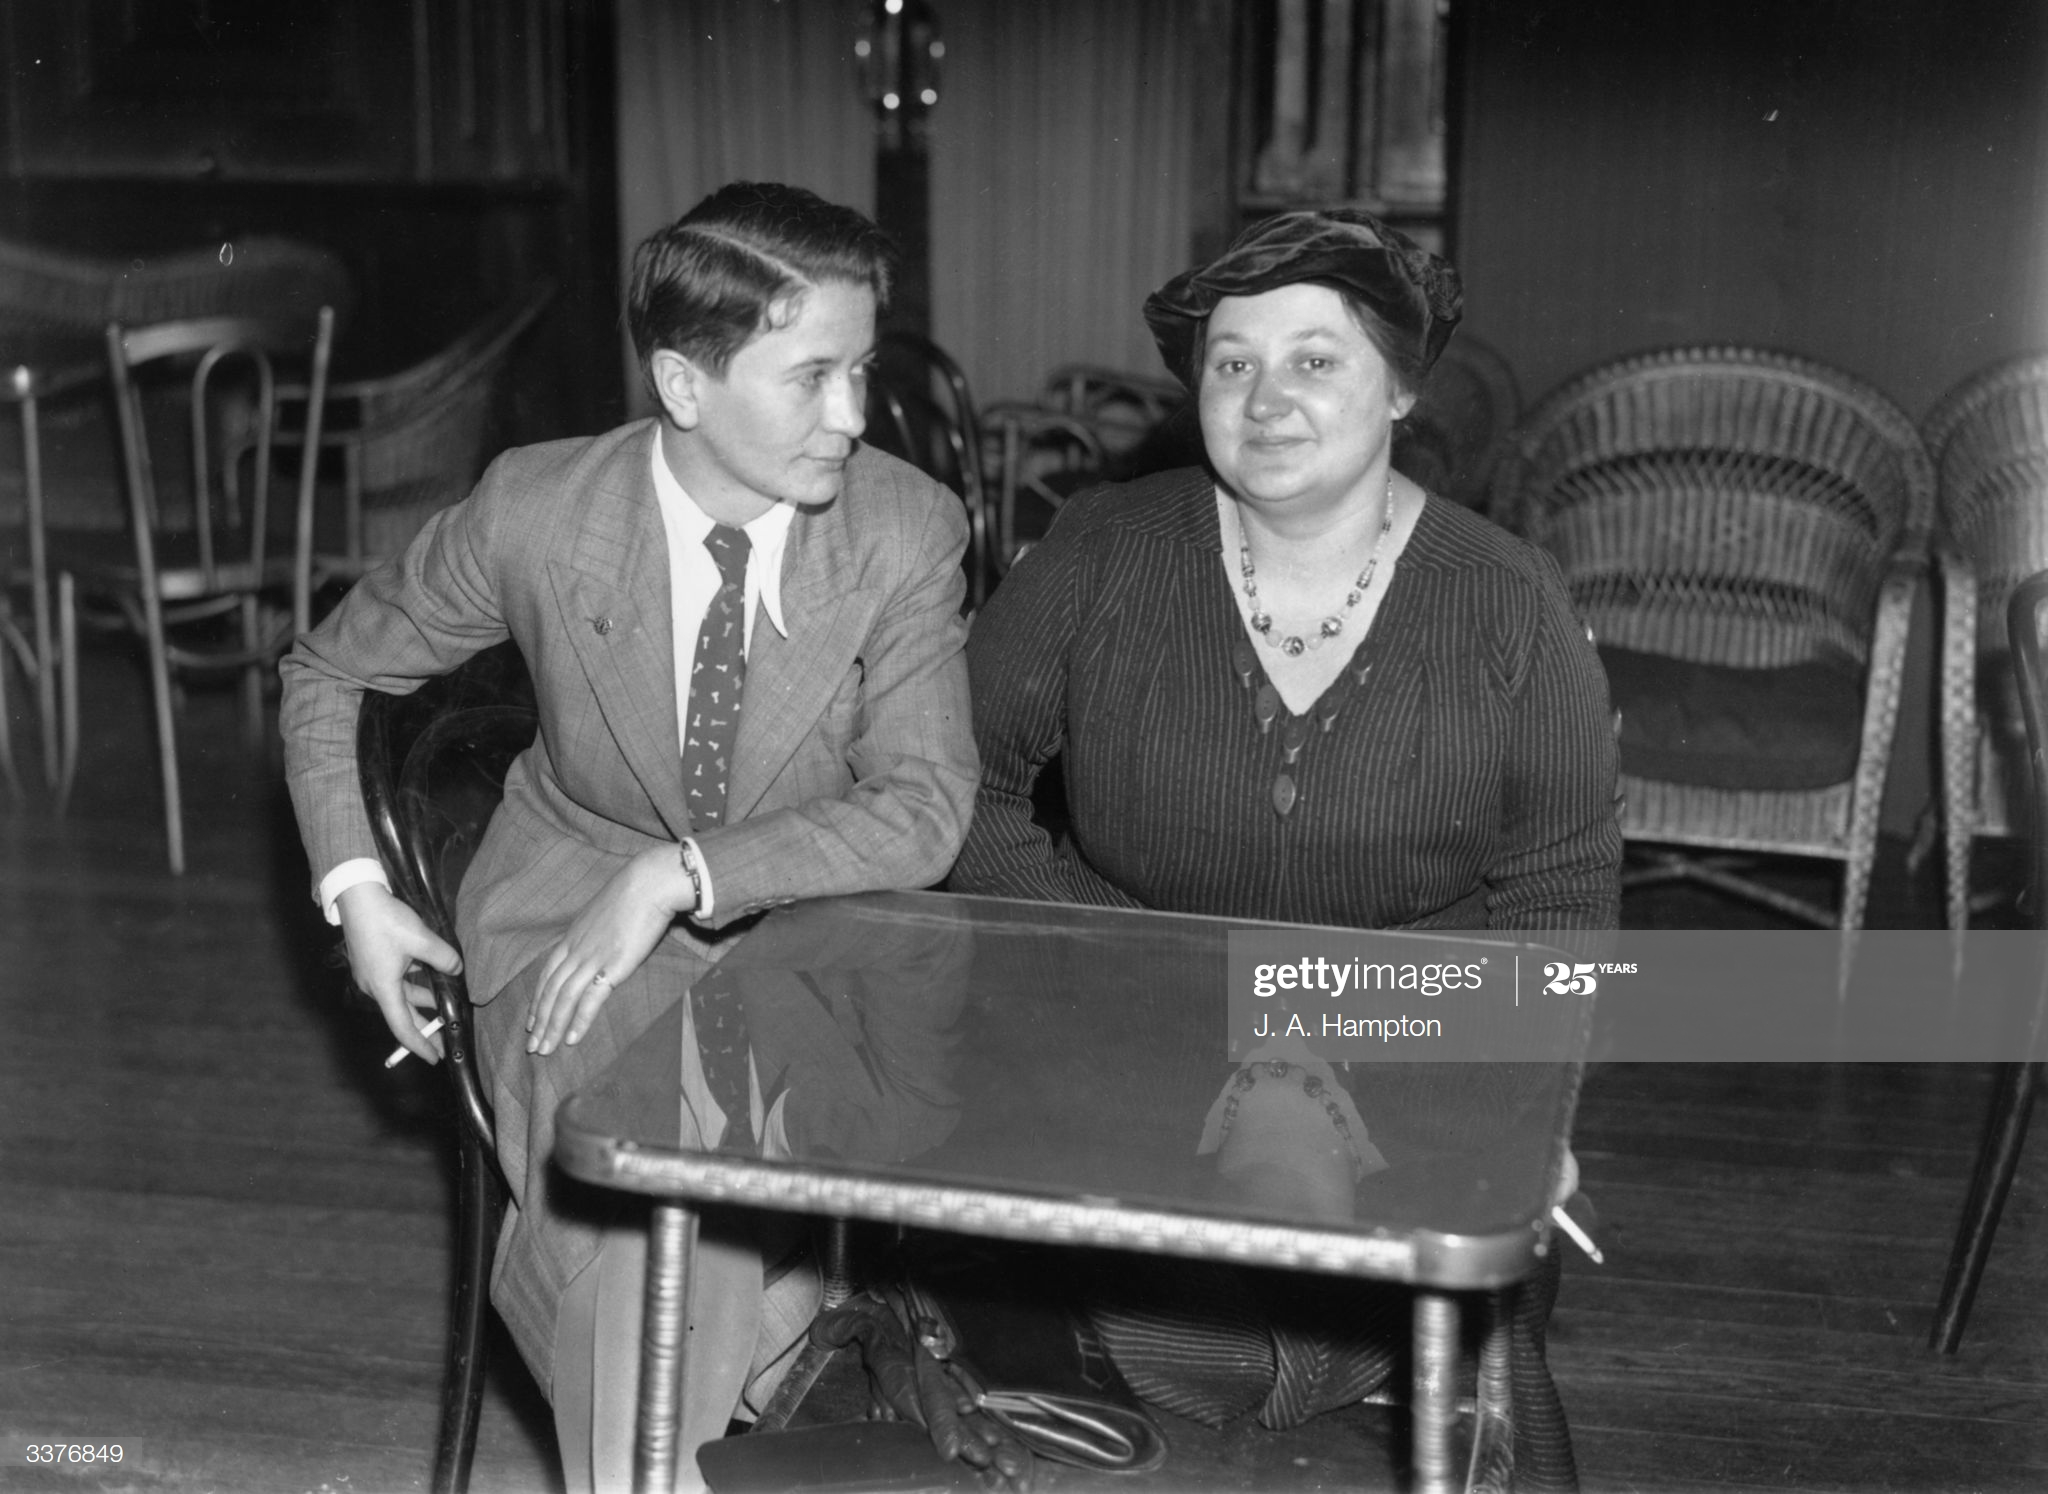 27th November 1936: Britain's world chess champion Vera Menchik (right) and challenger Sonja Graf after signing a contract at the Bloomsbury Hotel, London, to play for the championship of the world over 16 games. (Photo by J. A. Hampton/Topical Press Agency/Getty Images)